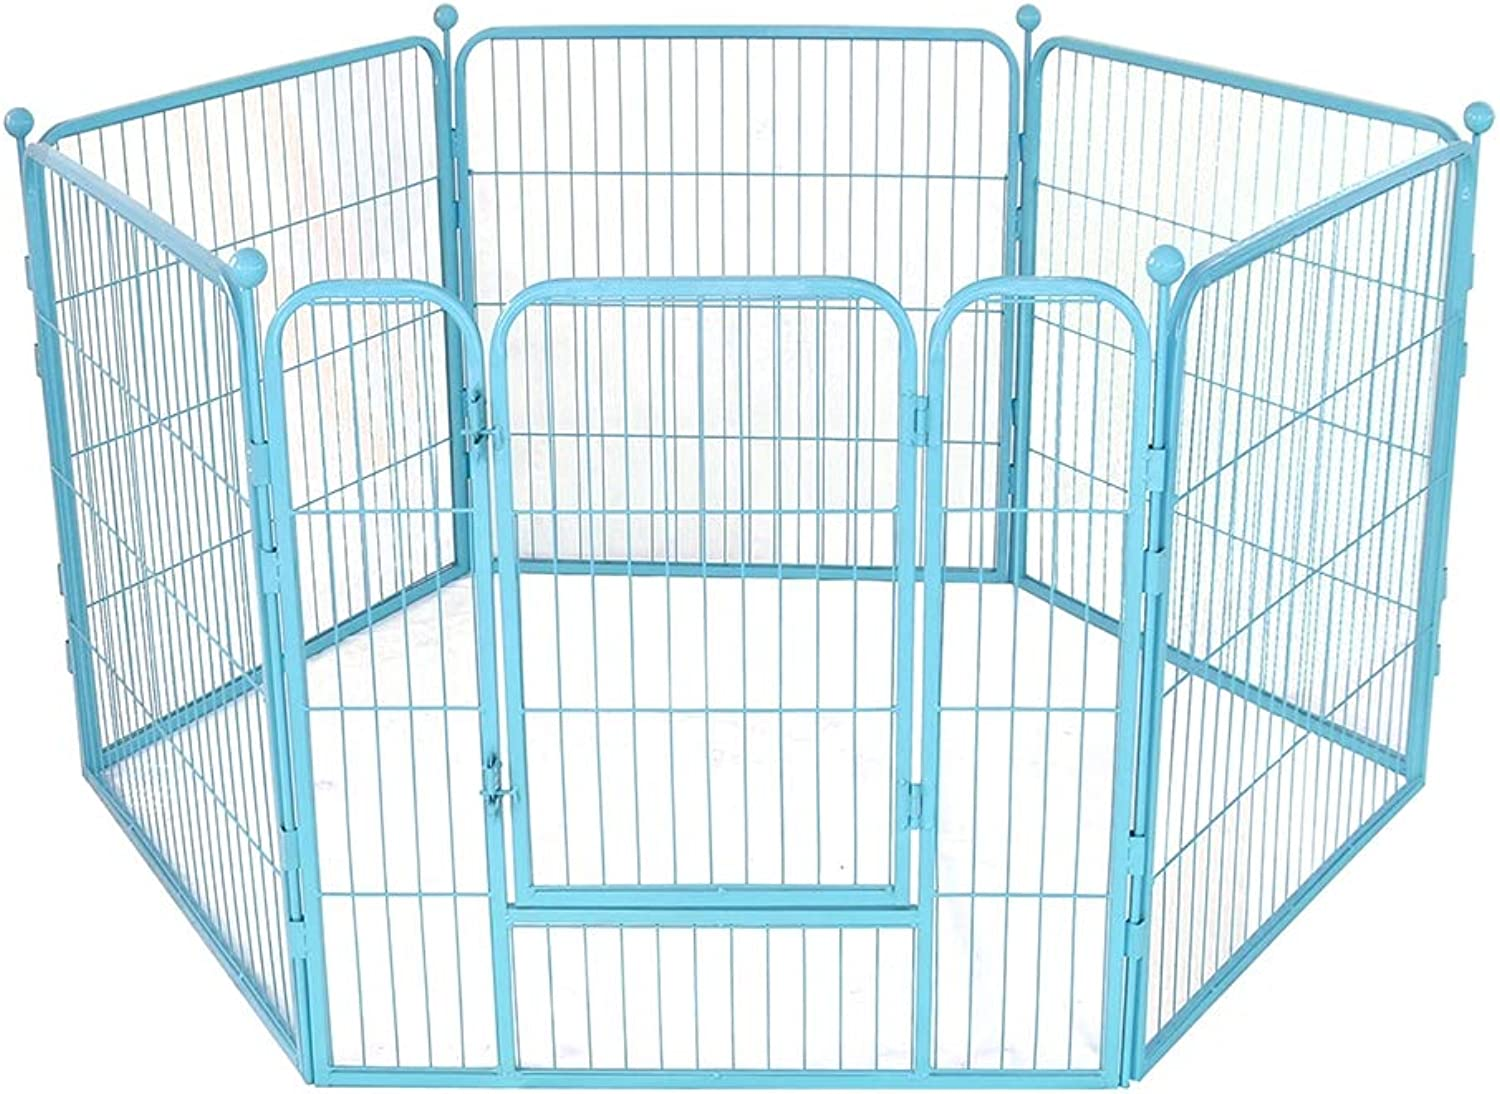 QNMM 6 Panel Dog Playpen Pet Exercise Pen Metal Pet Fence Puppy Metal Playpen Play Pen Suitable for Small and Medium Pets,bluee,S